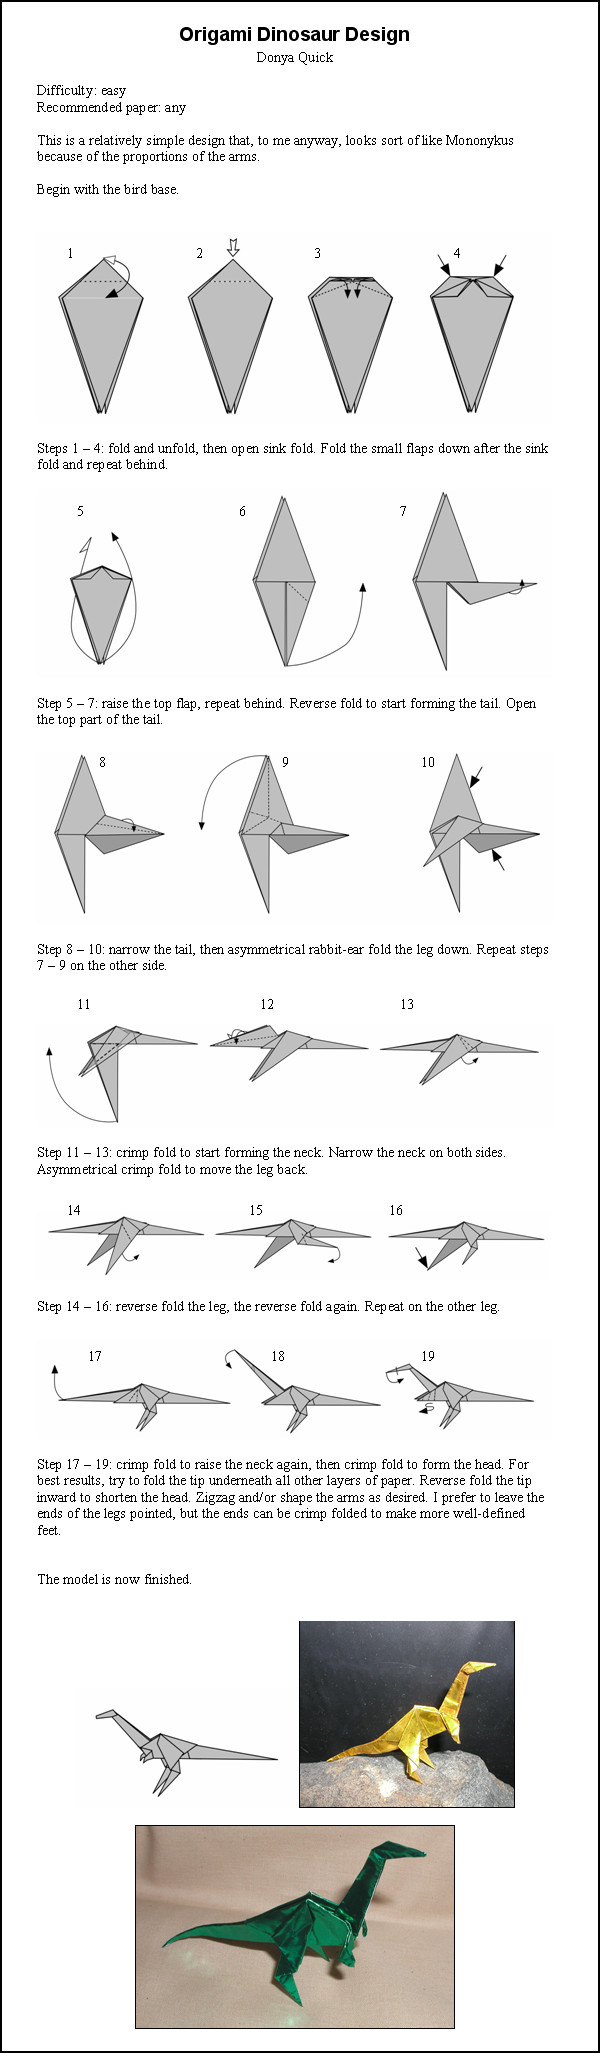 Bird Origami Diagram Free Wiring For You Easy Diagrams Dinosaur Instructions By Donyaquick On Deviantart Hummingbird